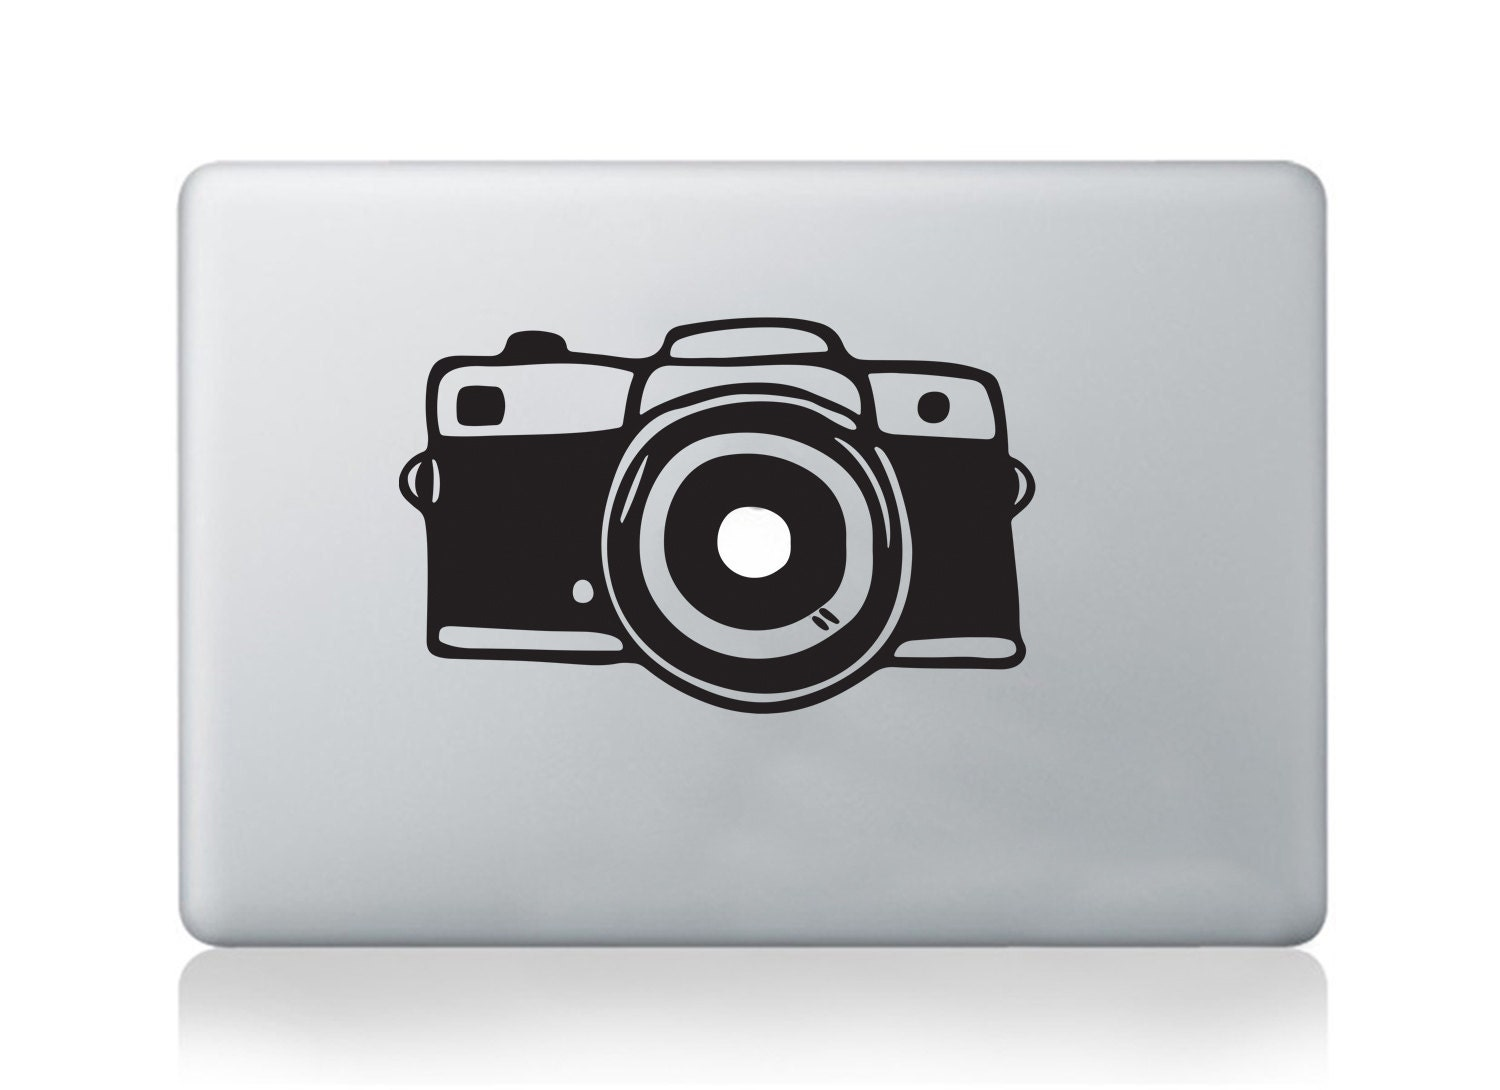 Photo camera macbook decal pro air vinyl nikon canon sticker DSLR decal transfer graphic laptop notebook skin Asus HP Toshiba Dell decal